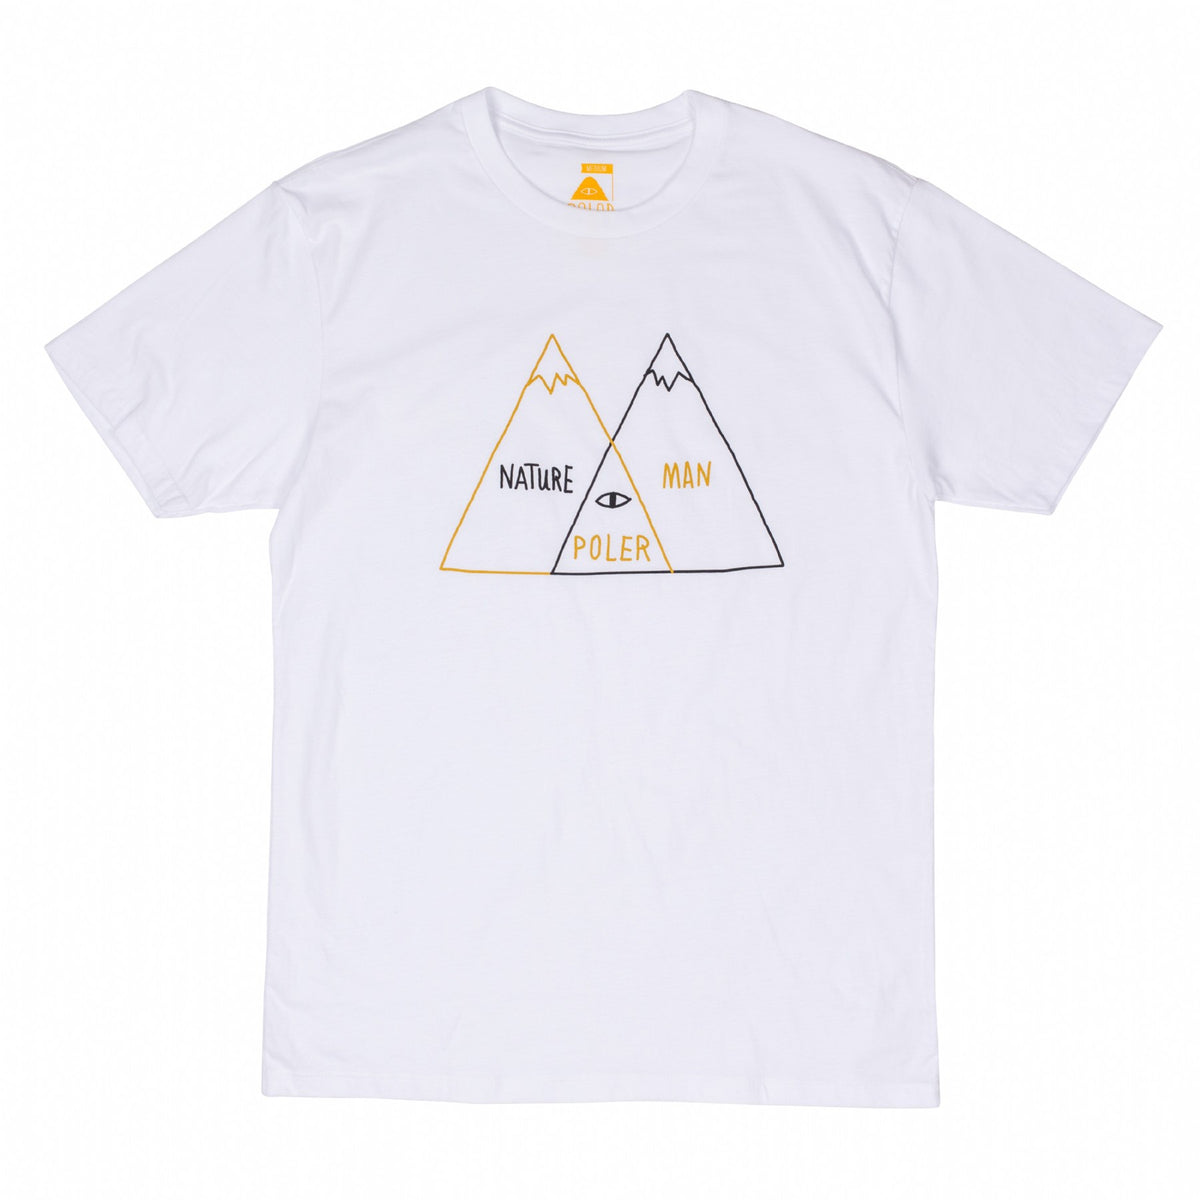 Venn Diagram Tee - White